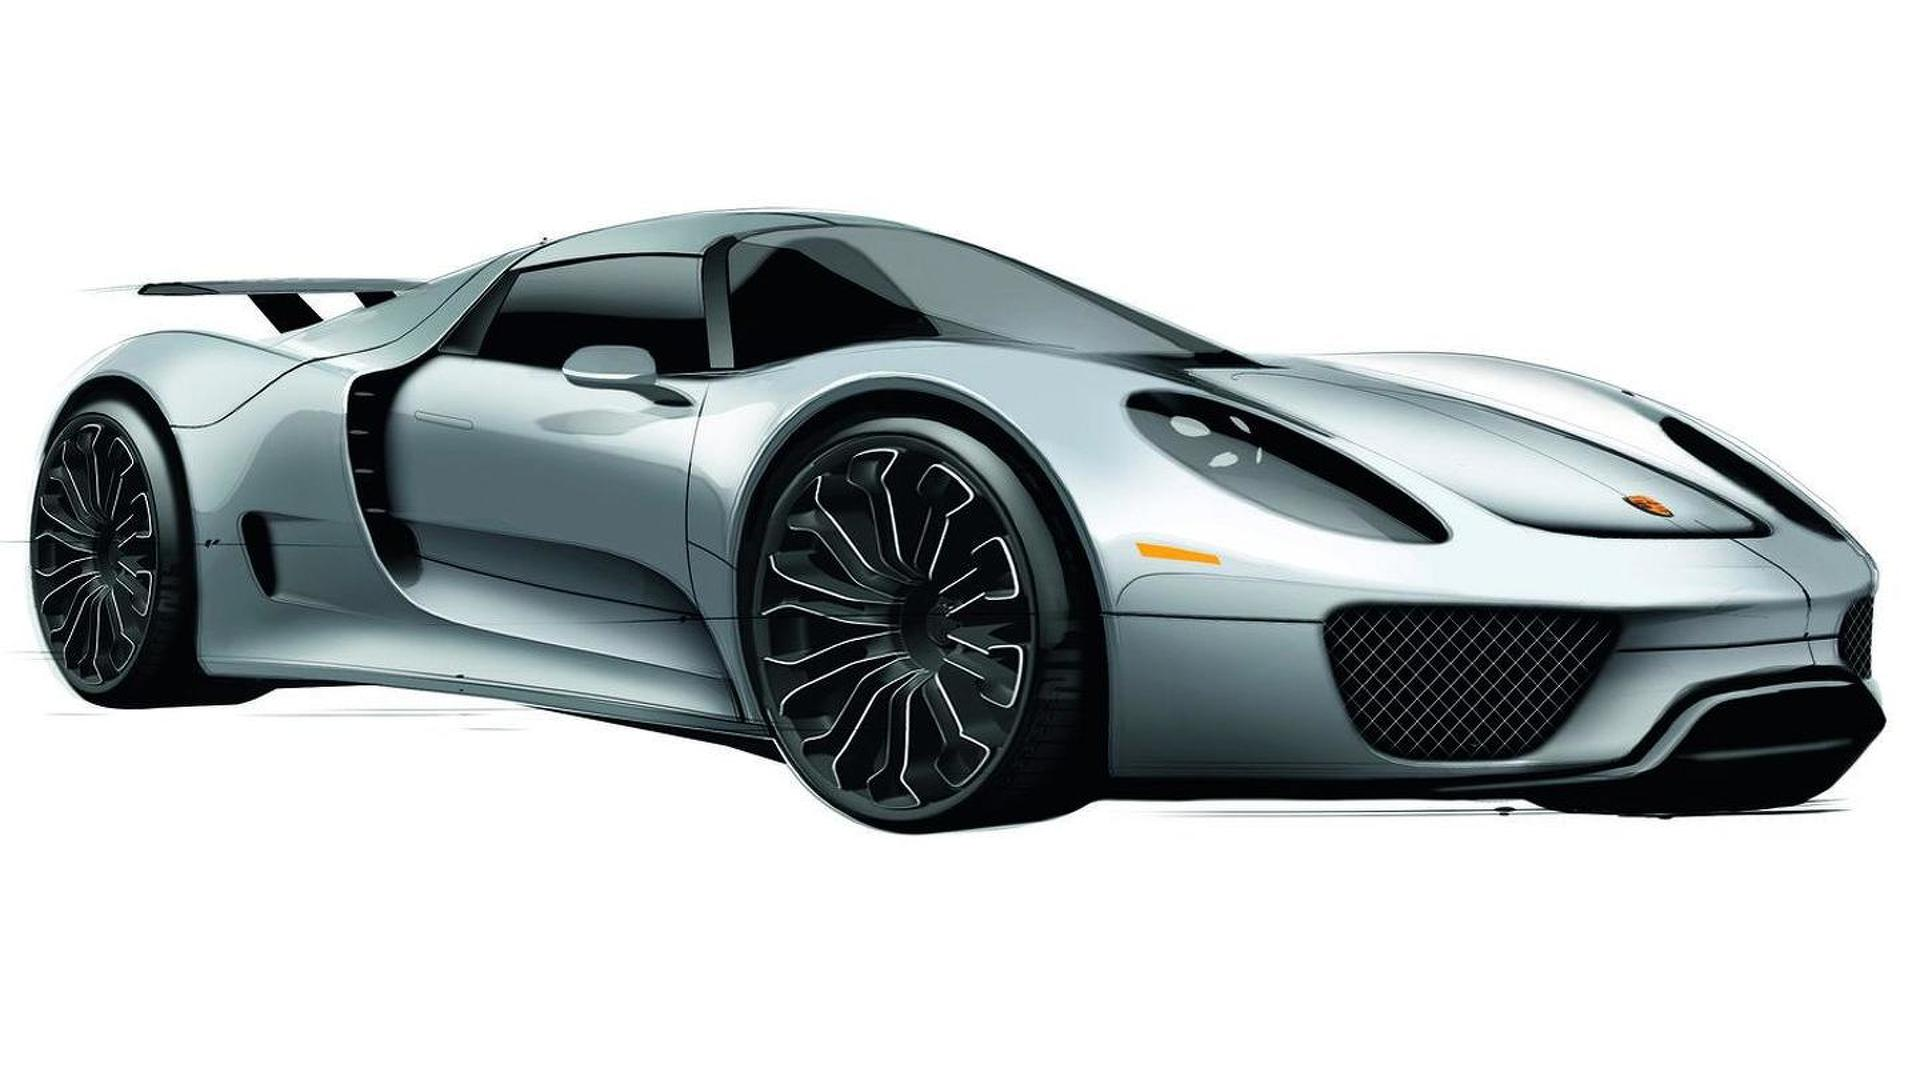 Porsche '988' with 600 bhp quad-turbo flat-eight engine in the works - report